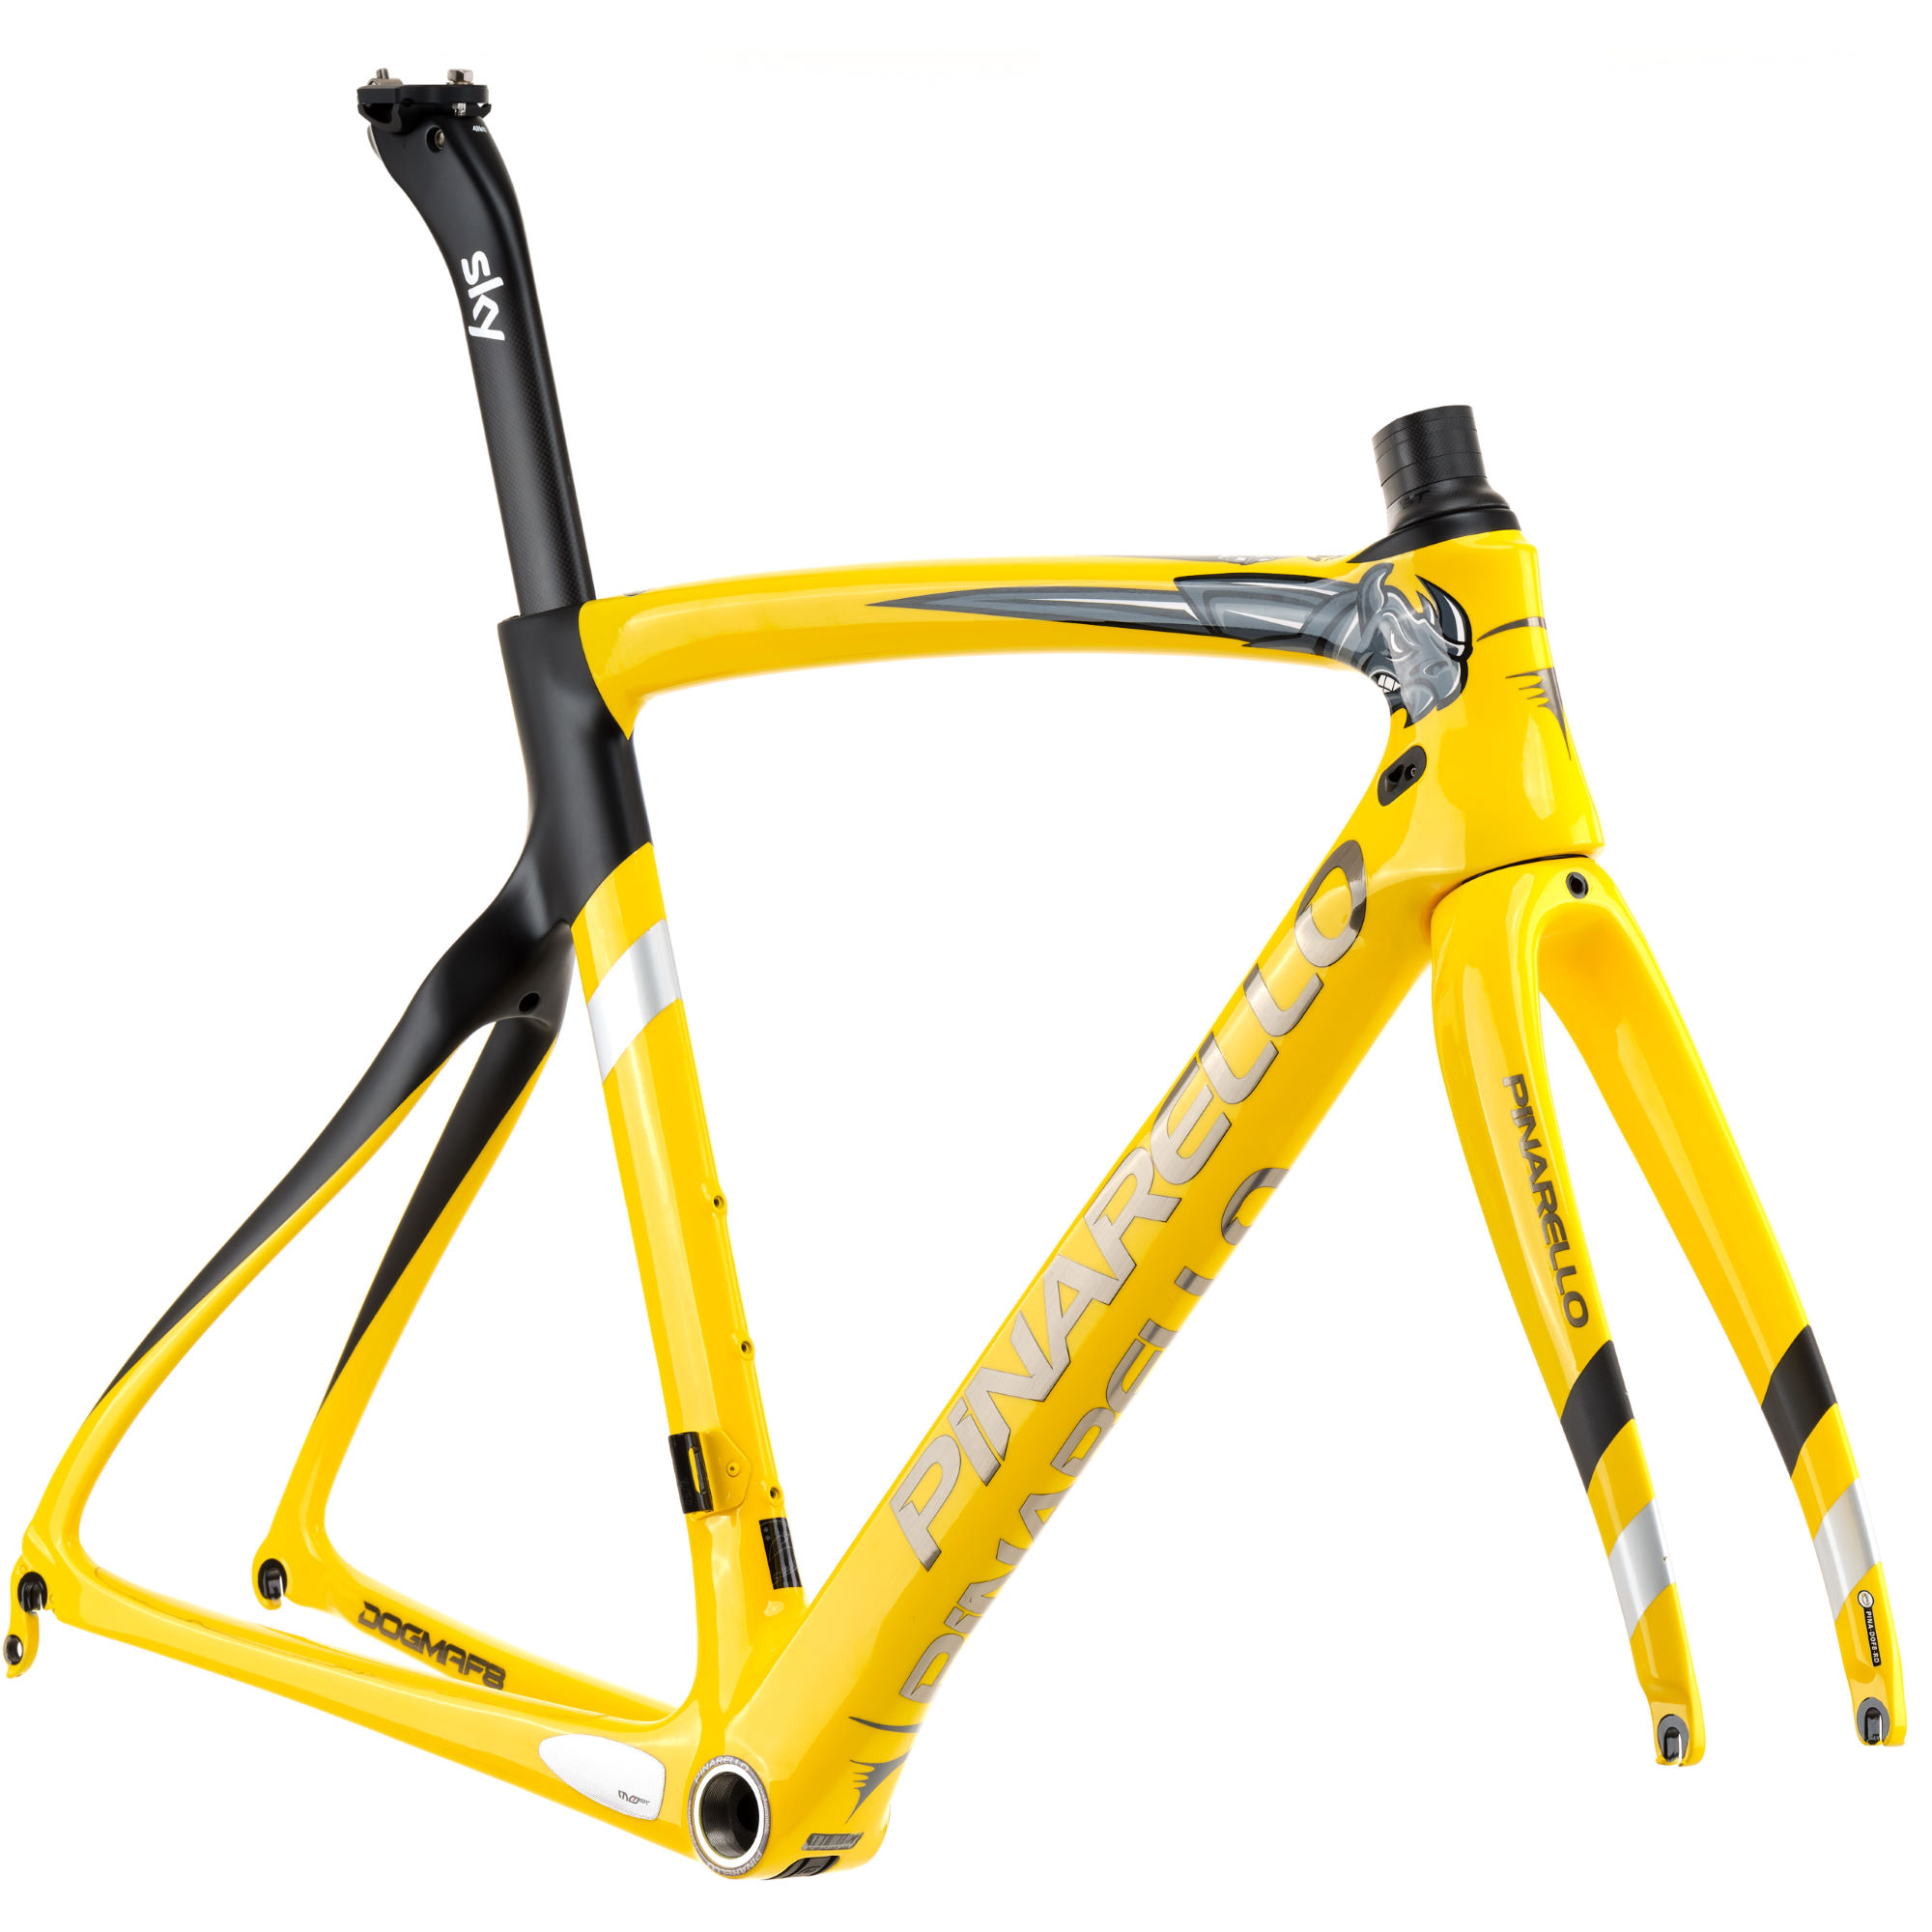 Huge Pinarello Frameset Sale - Up to 40% Off | Cycling deals from Dealclincher